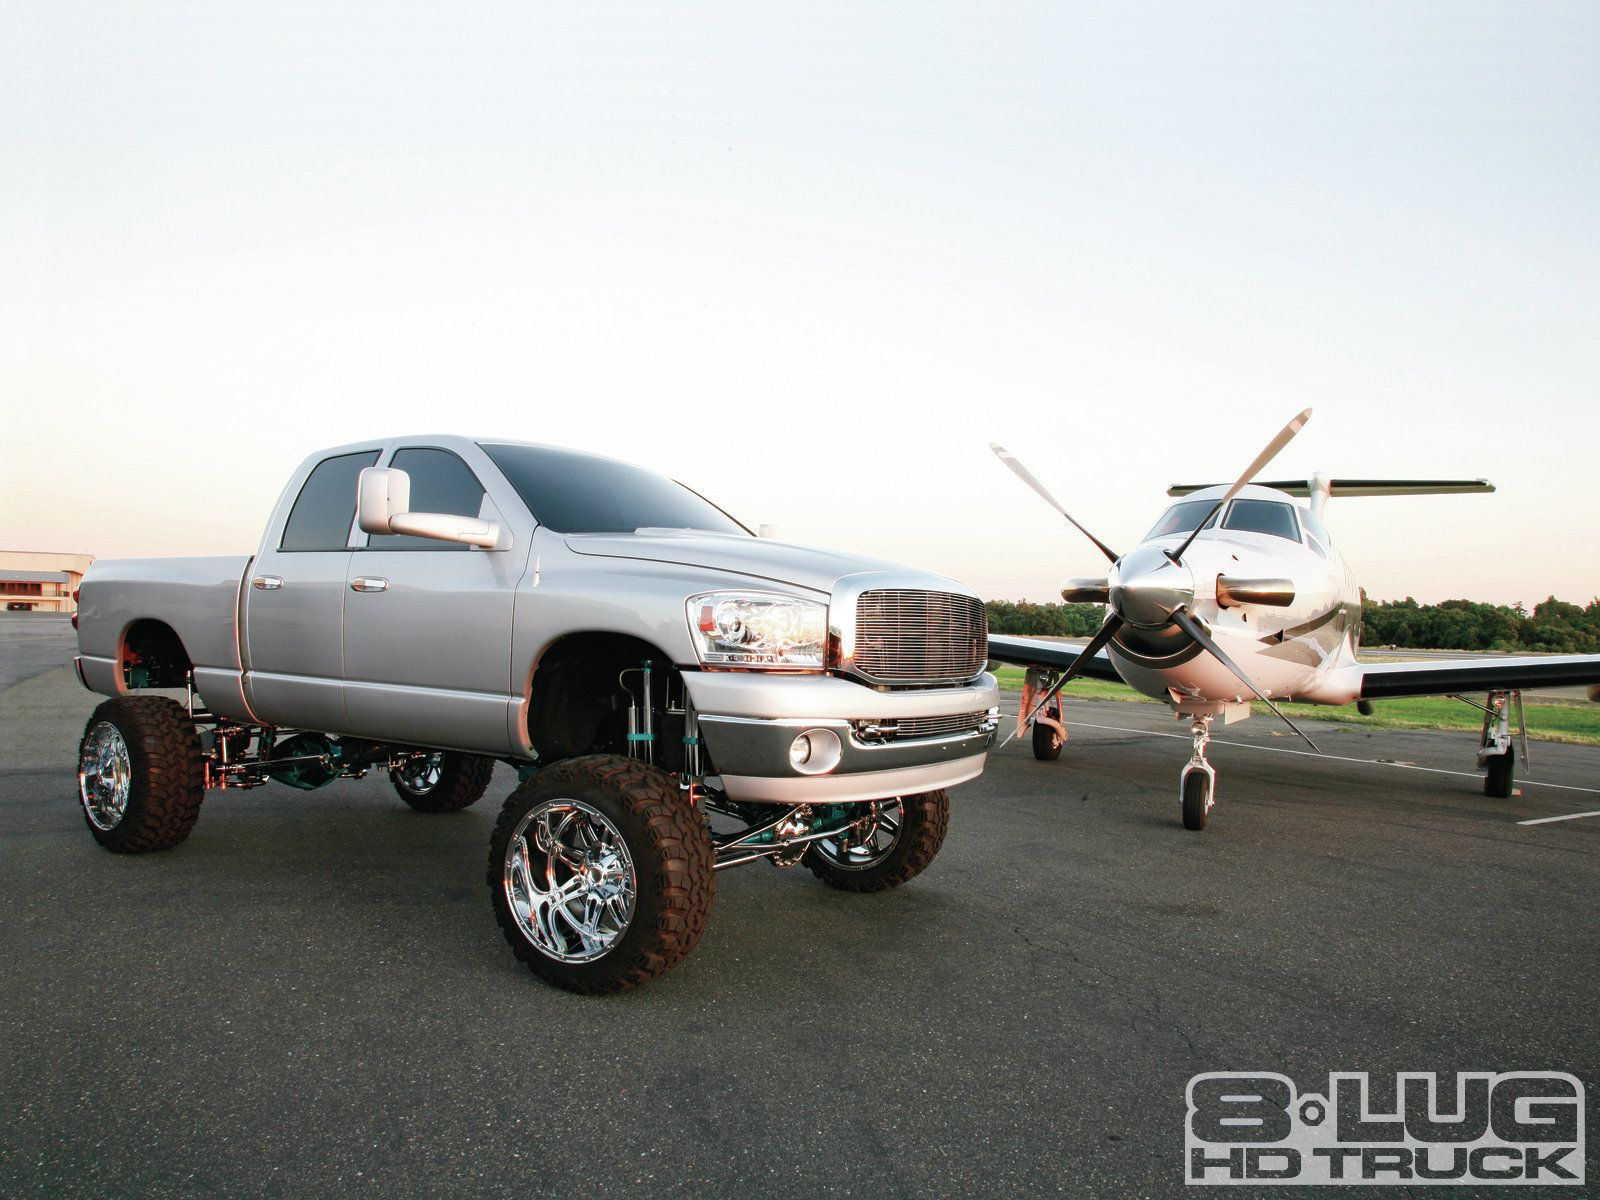 All for show 2007 dodge ram 2500 4x4 2007 dodge ram 2500 4x4 with small plane